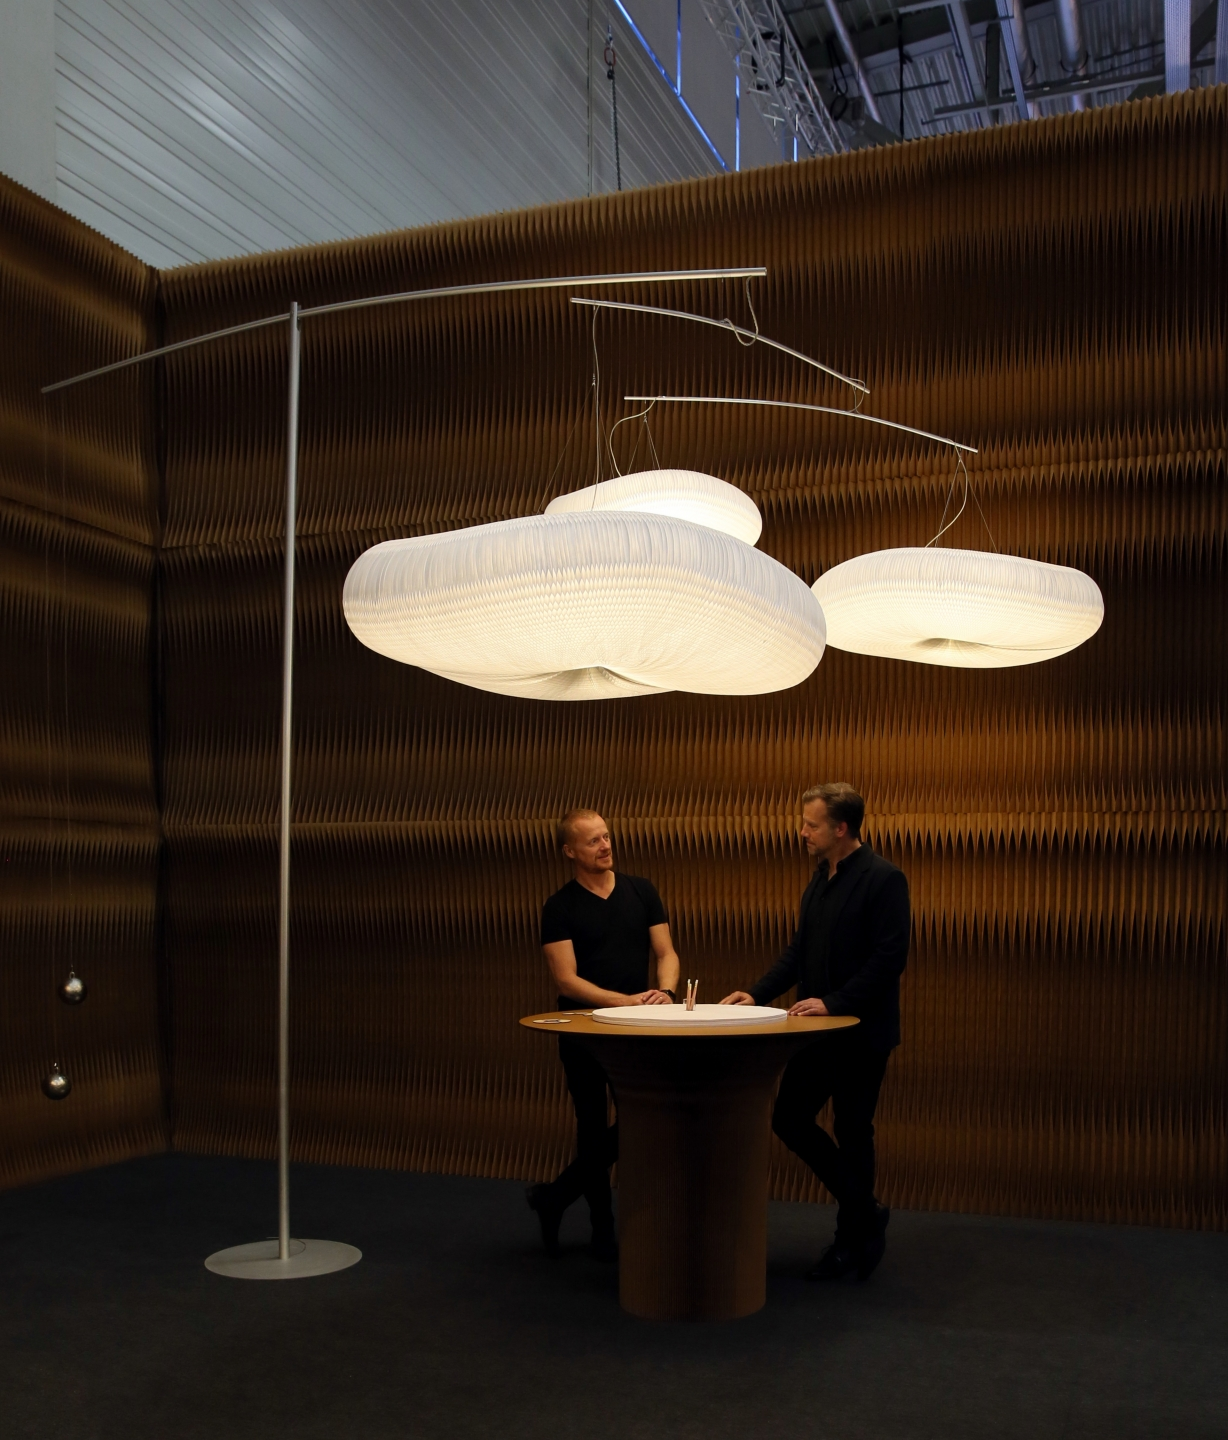 soft lighting and paper furniture by molo - two men share a conversation in molo's booth at Orgatec 2016